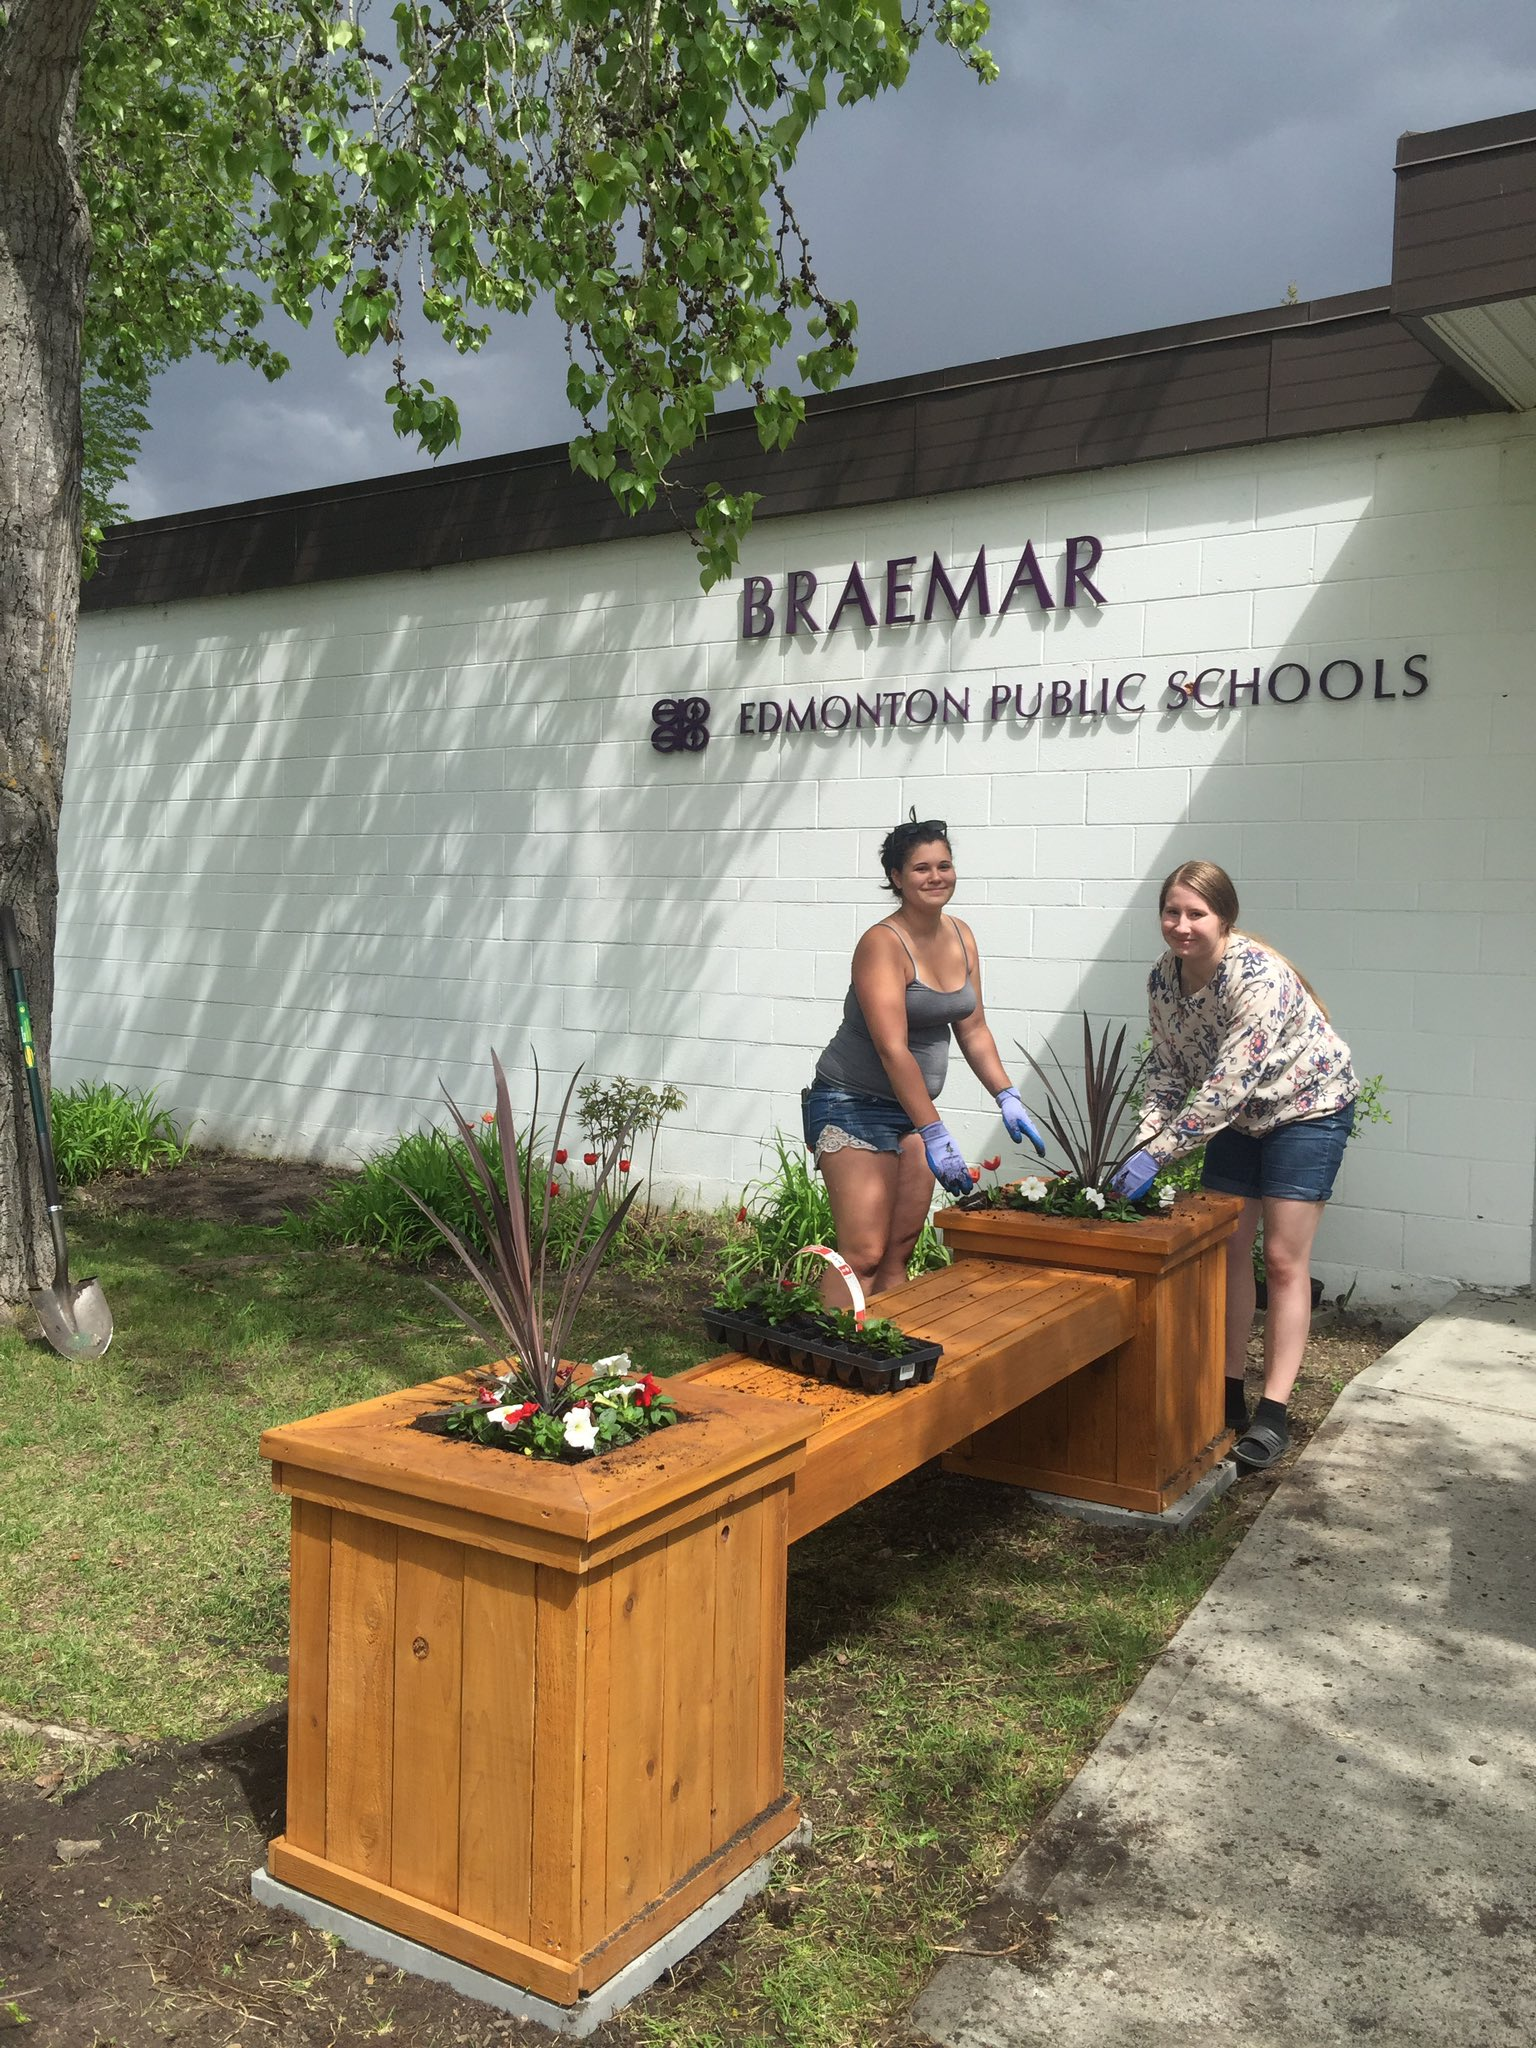 Plants for the new planter at Braemar #YAS2017 #epsbnews https://t.co/wZsMJtvcYo